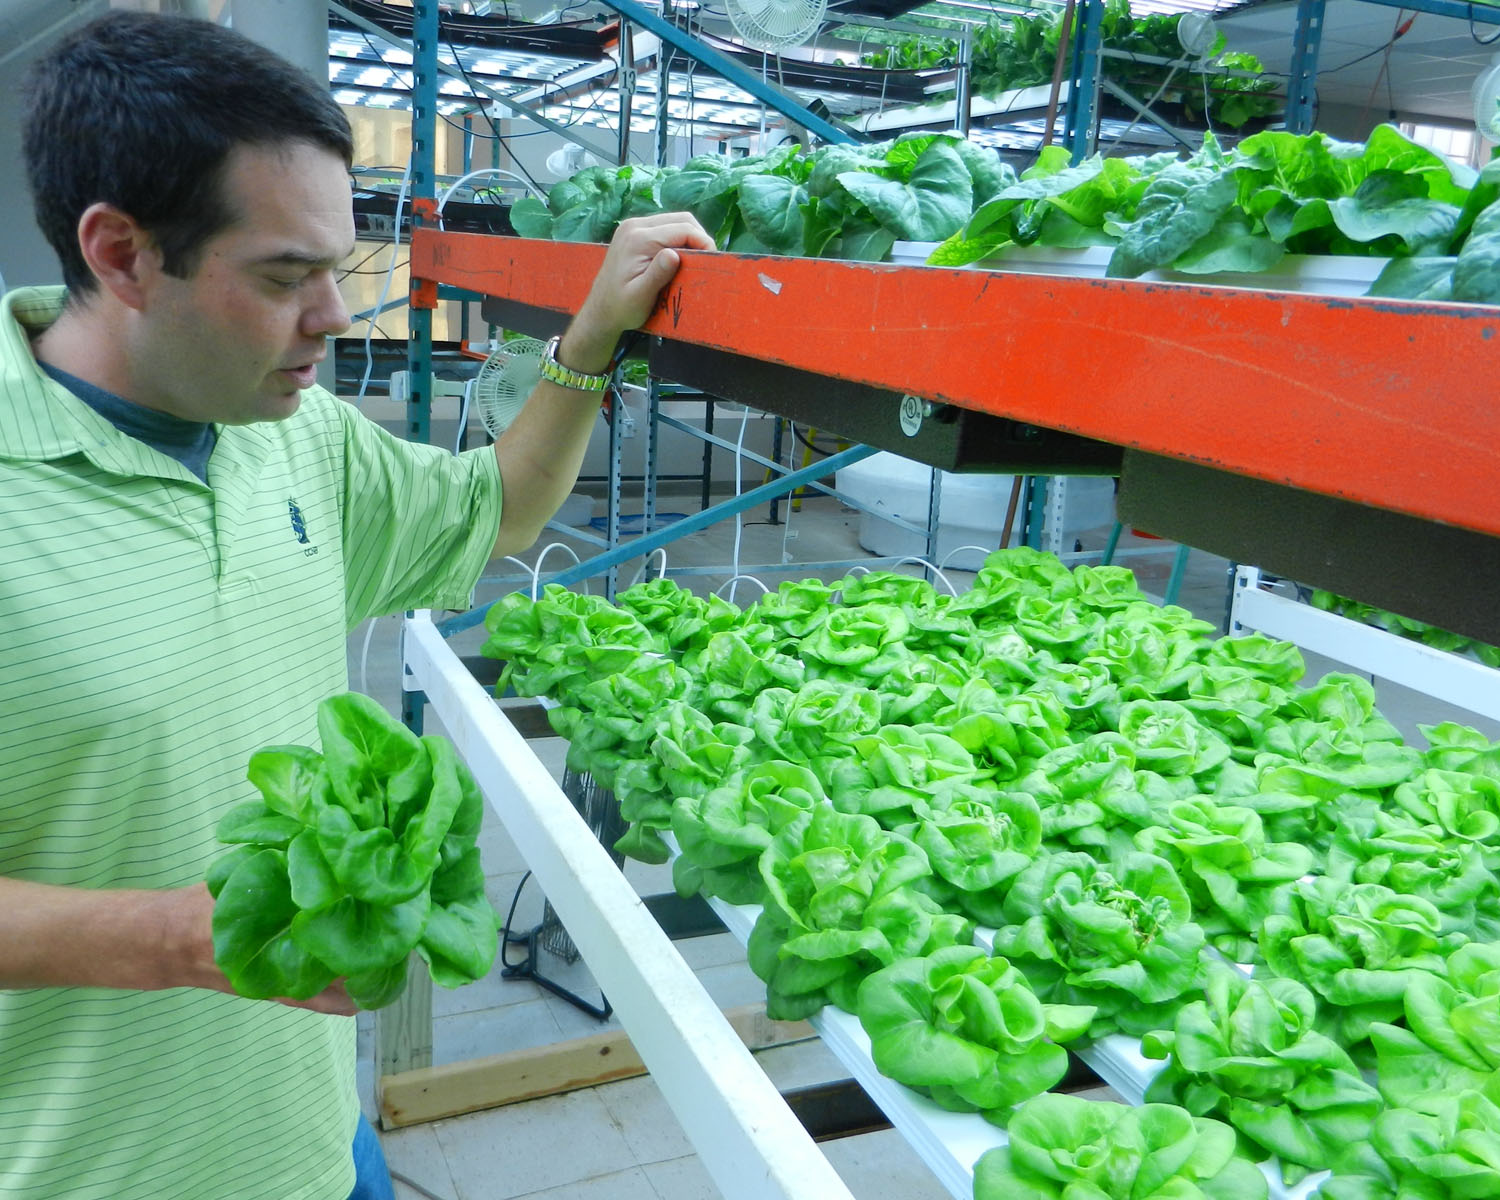 S&S's Urban Acres is selling produce to Whole Foods and the Farm Fresh Market Mobile. Brad Dean runs the farm in a Fall River textile mill. (Tim Faulkner/ecoRI News)